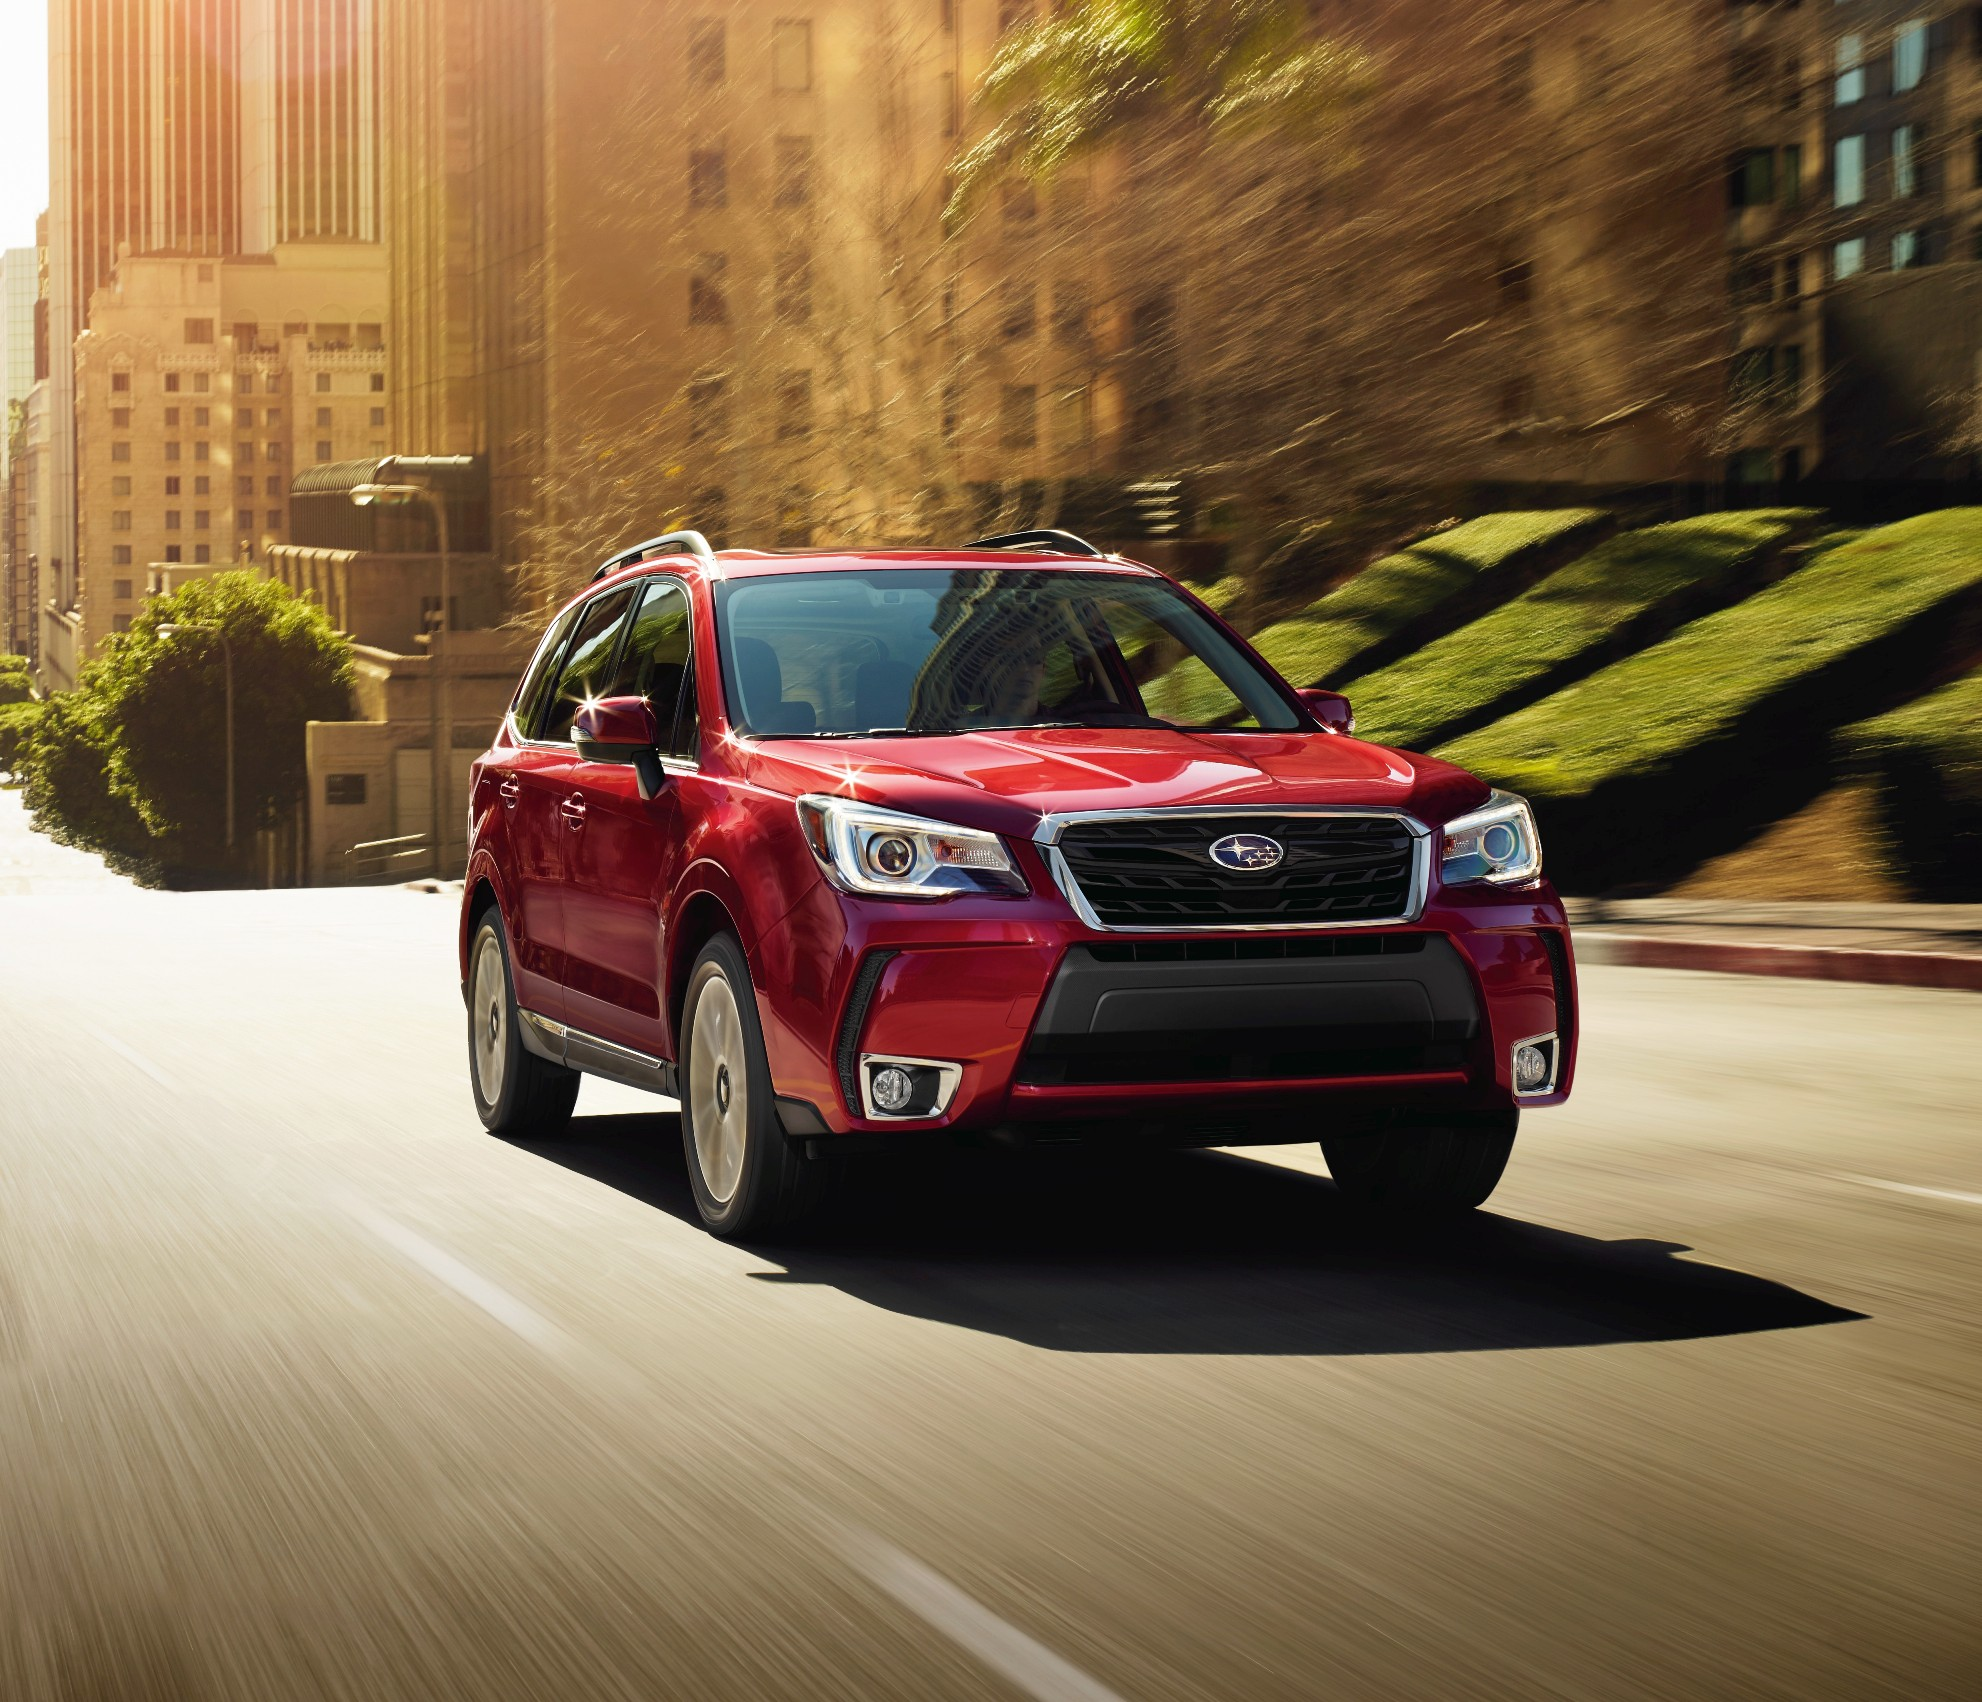 2018 Subaru Forester Overview The News Wheel